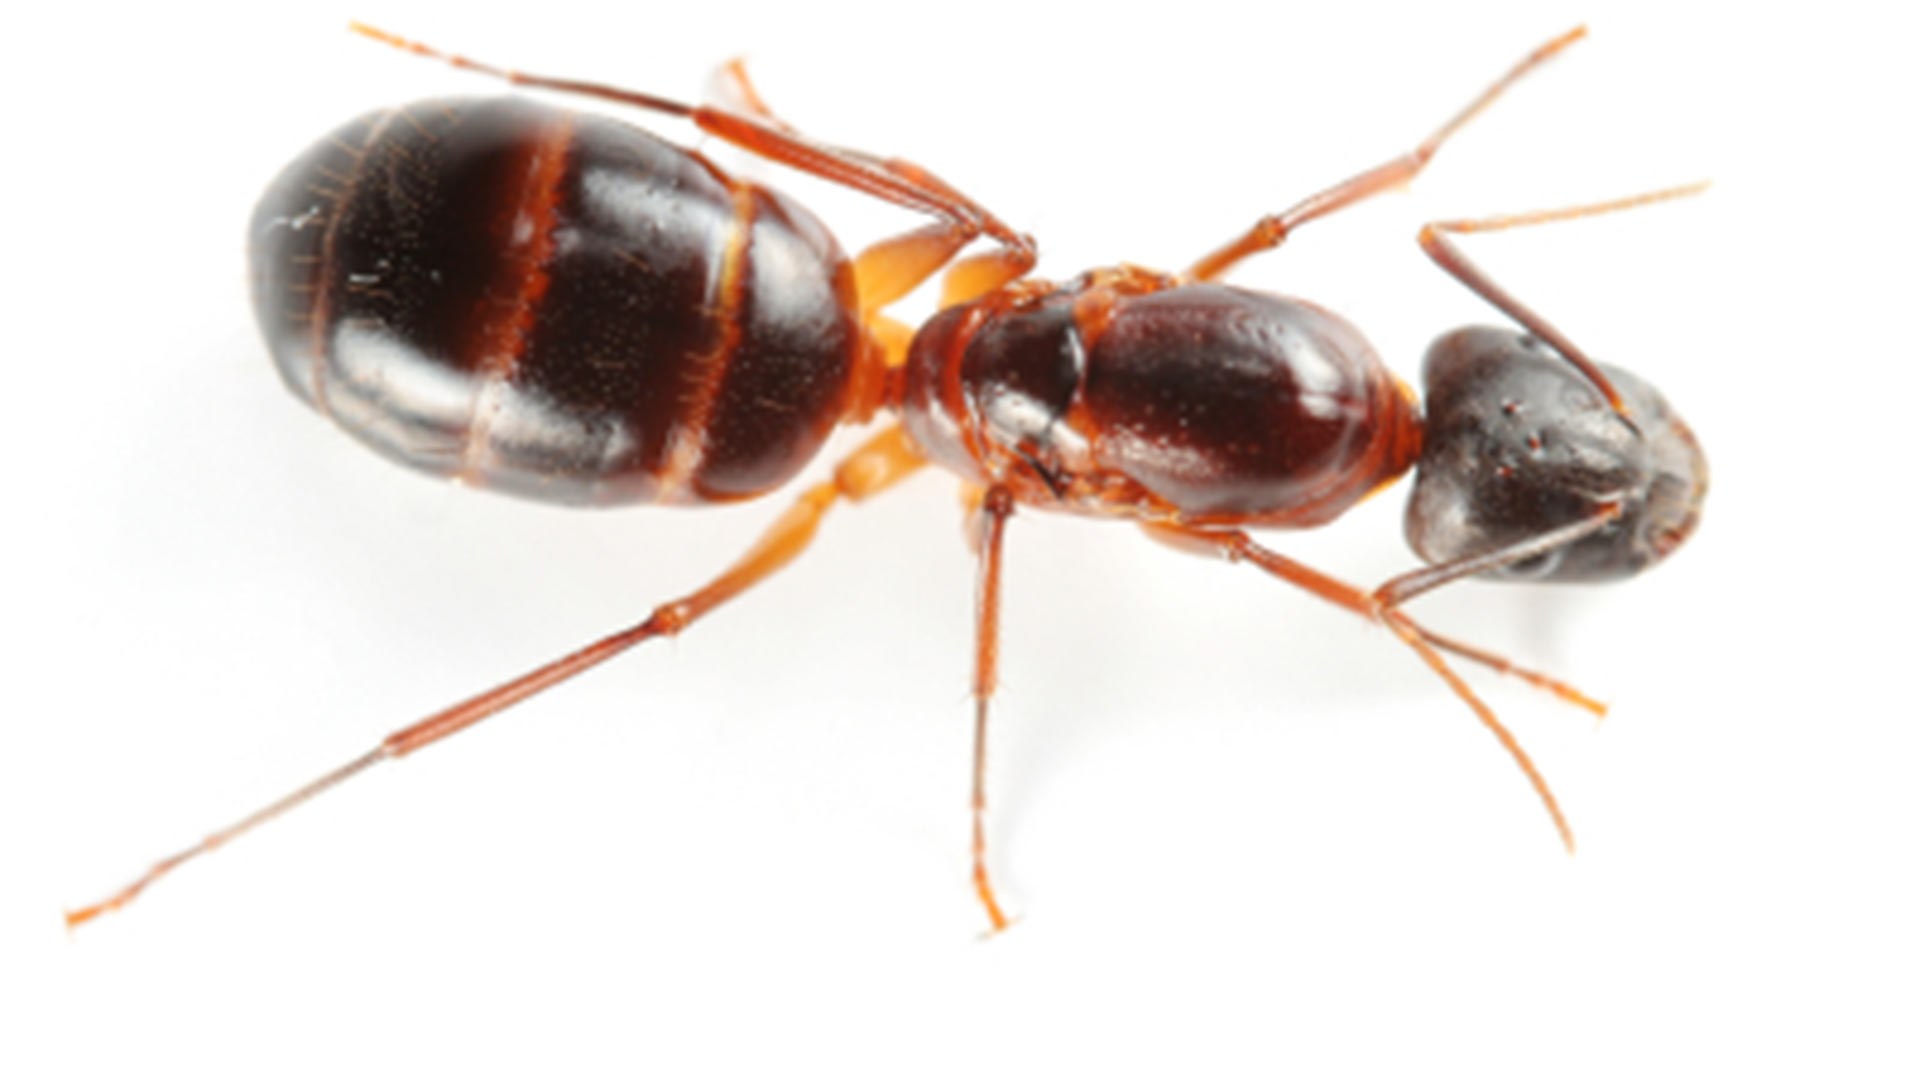 Carpenter ant identification, damage, and control